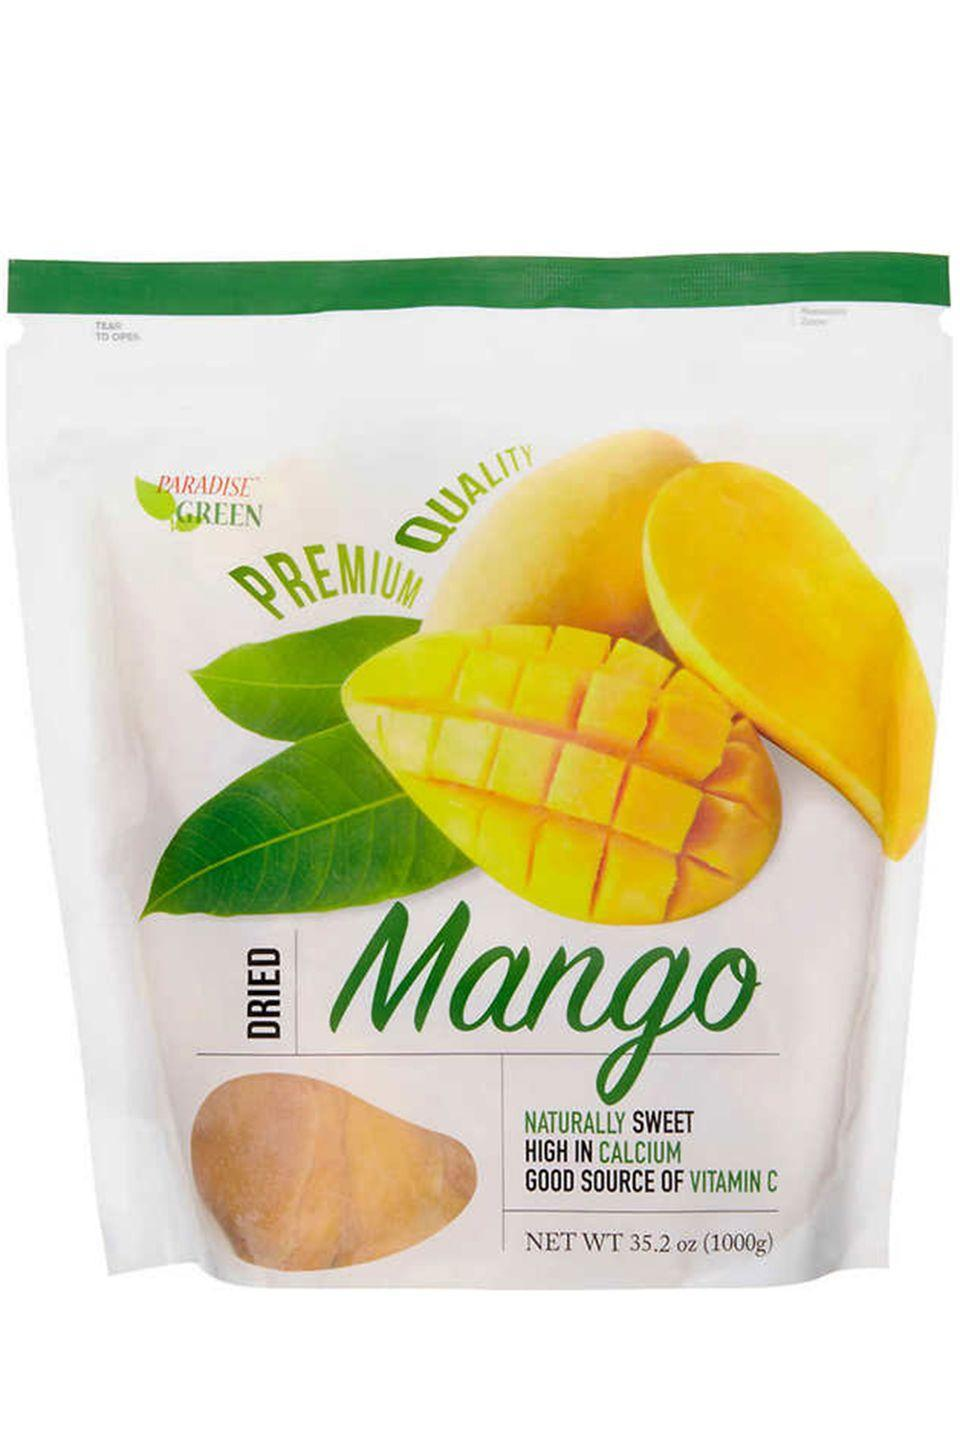 """<p>There are so many <a href=""""https://www.costco.com/Paradise-Green-Premium-Dried-Mango%2c-35.2-oz..product.100381427.html"""" rel=""""nofollow noopener"""" target=""""_blank"""" data-ylk=""""slk:options"""" class=""""link rapid-noclick-resp"""">options</a>! All of them delicious! All of them wildly cheap in bulk! All of them worth exploring!</p>"""